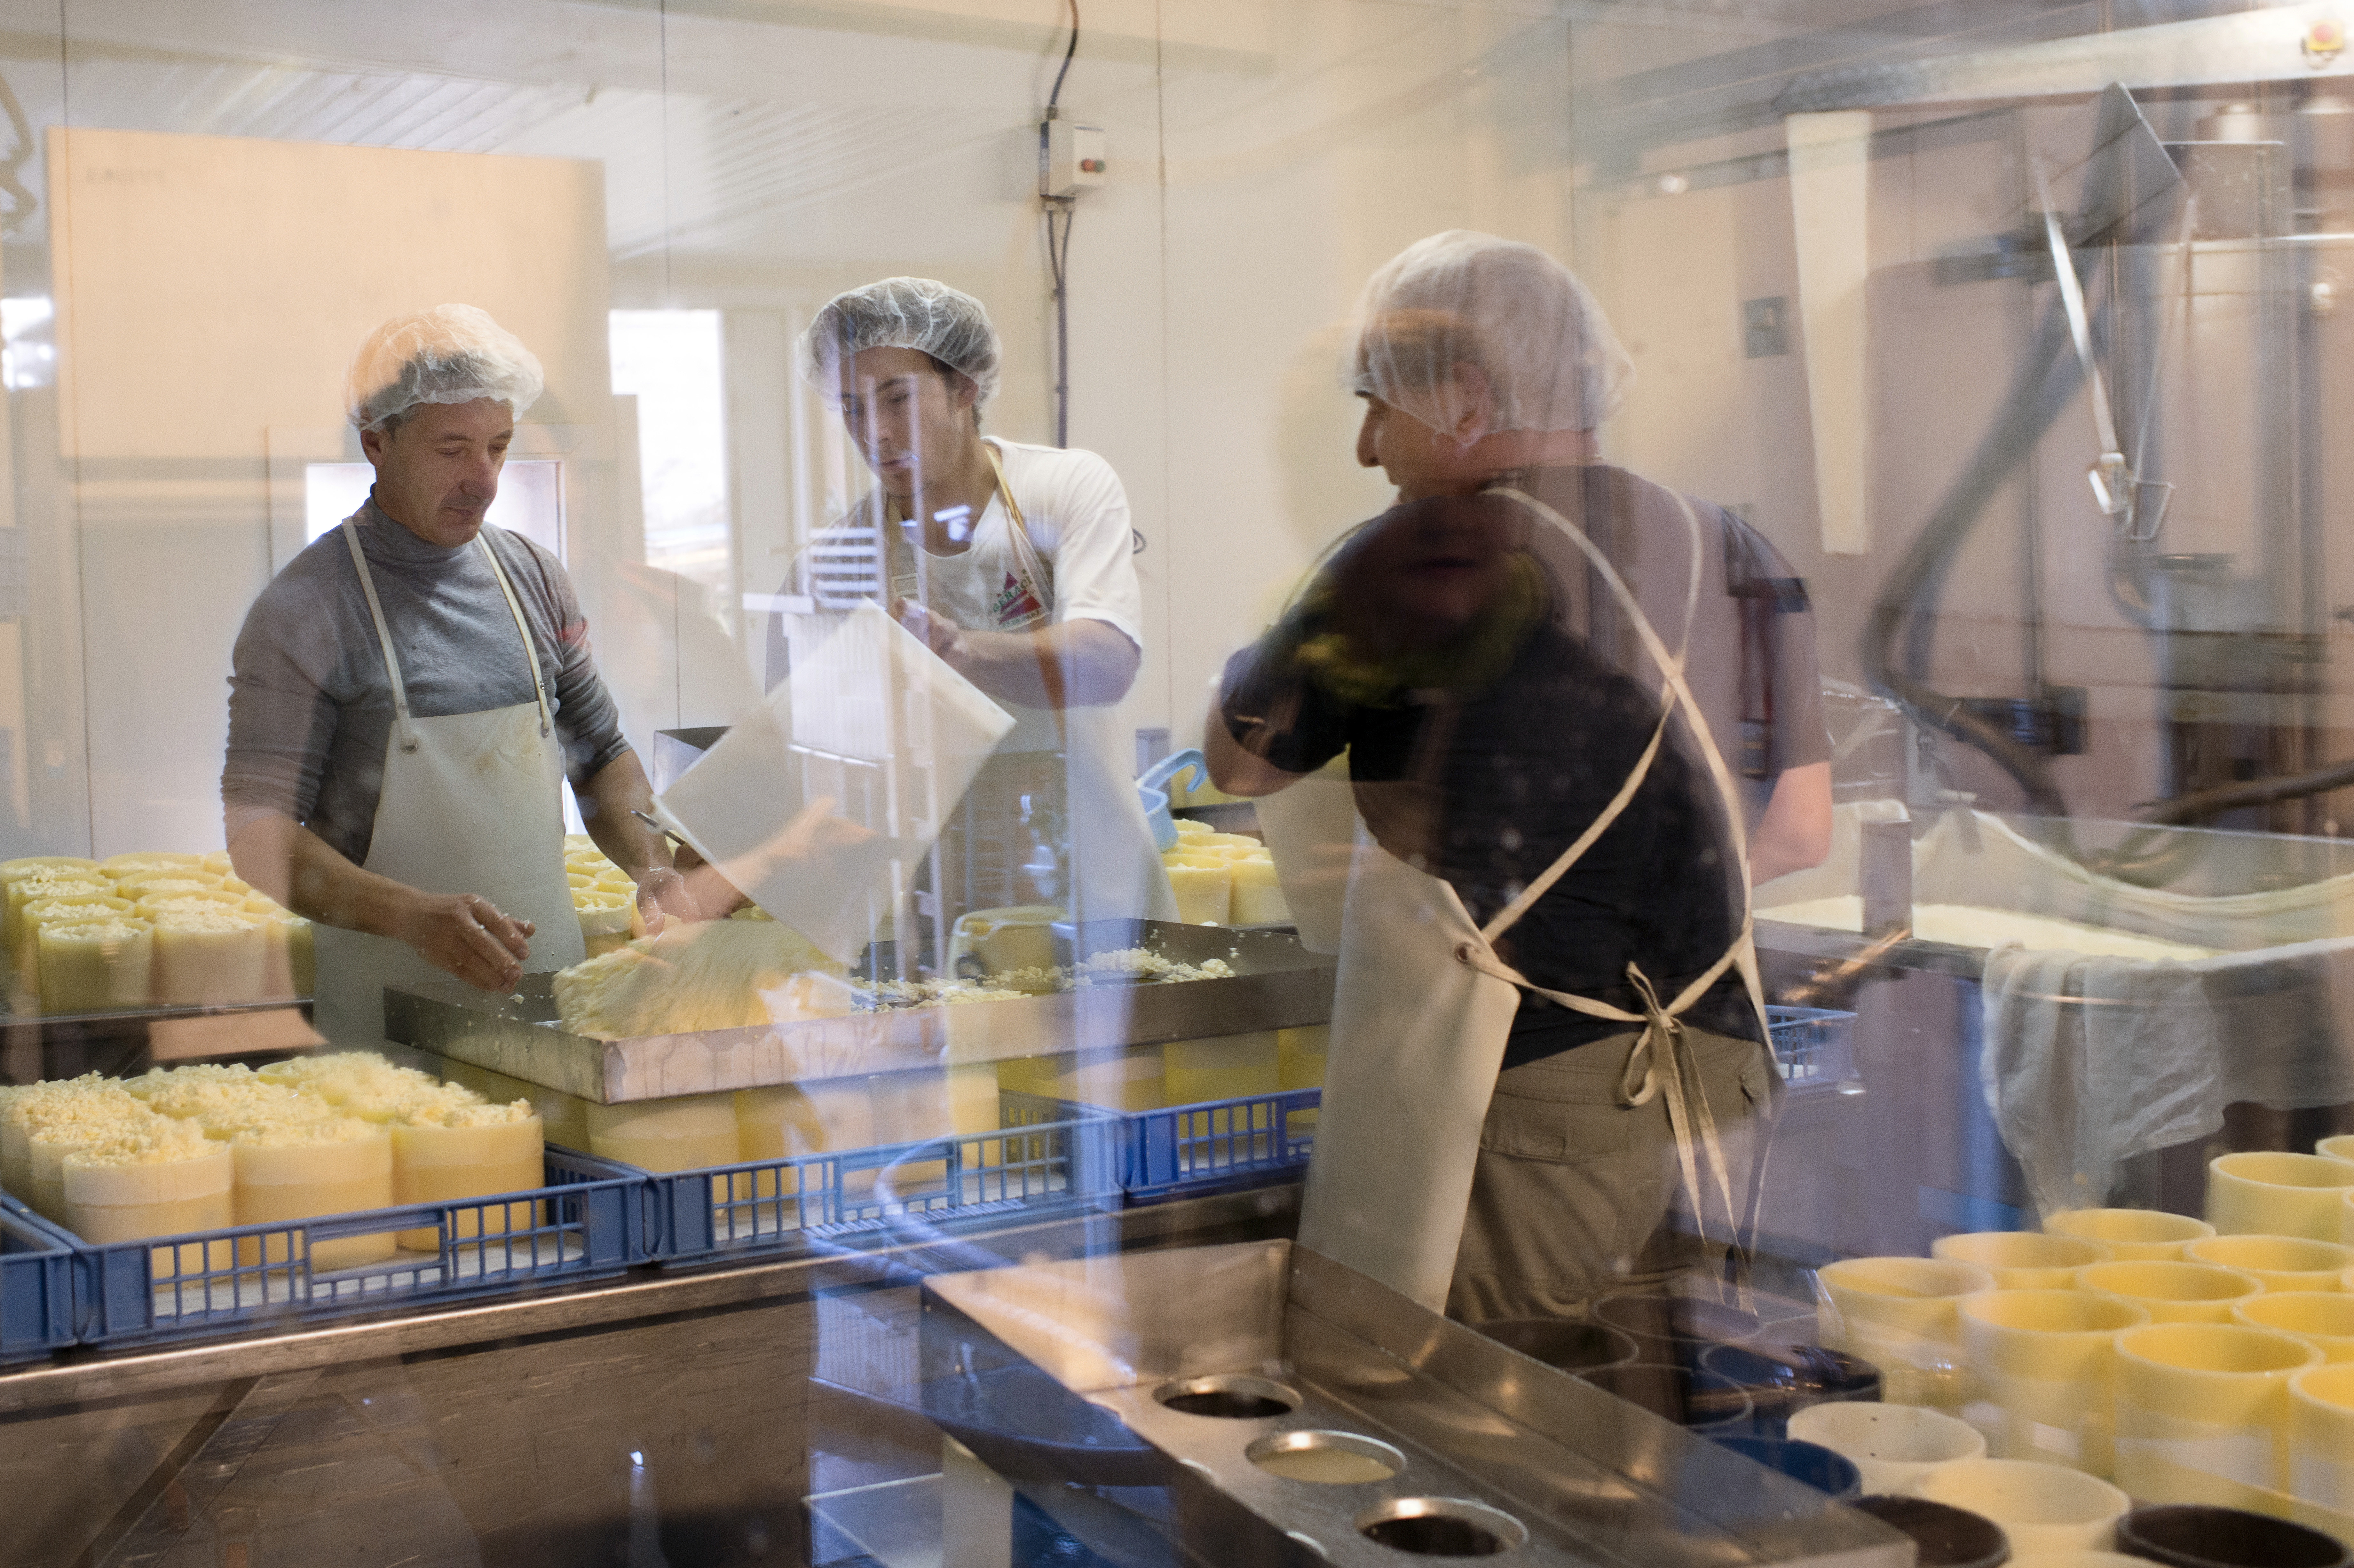 Workers preparing Fourme de Montbrison cheese at the Hautes Chaumes dairy in Sauvain, near Montbrison, central France